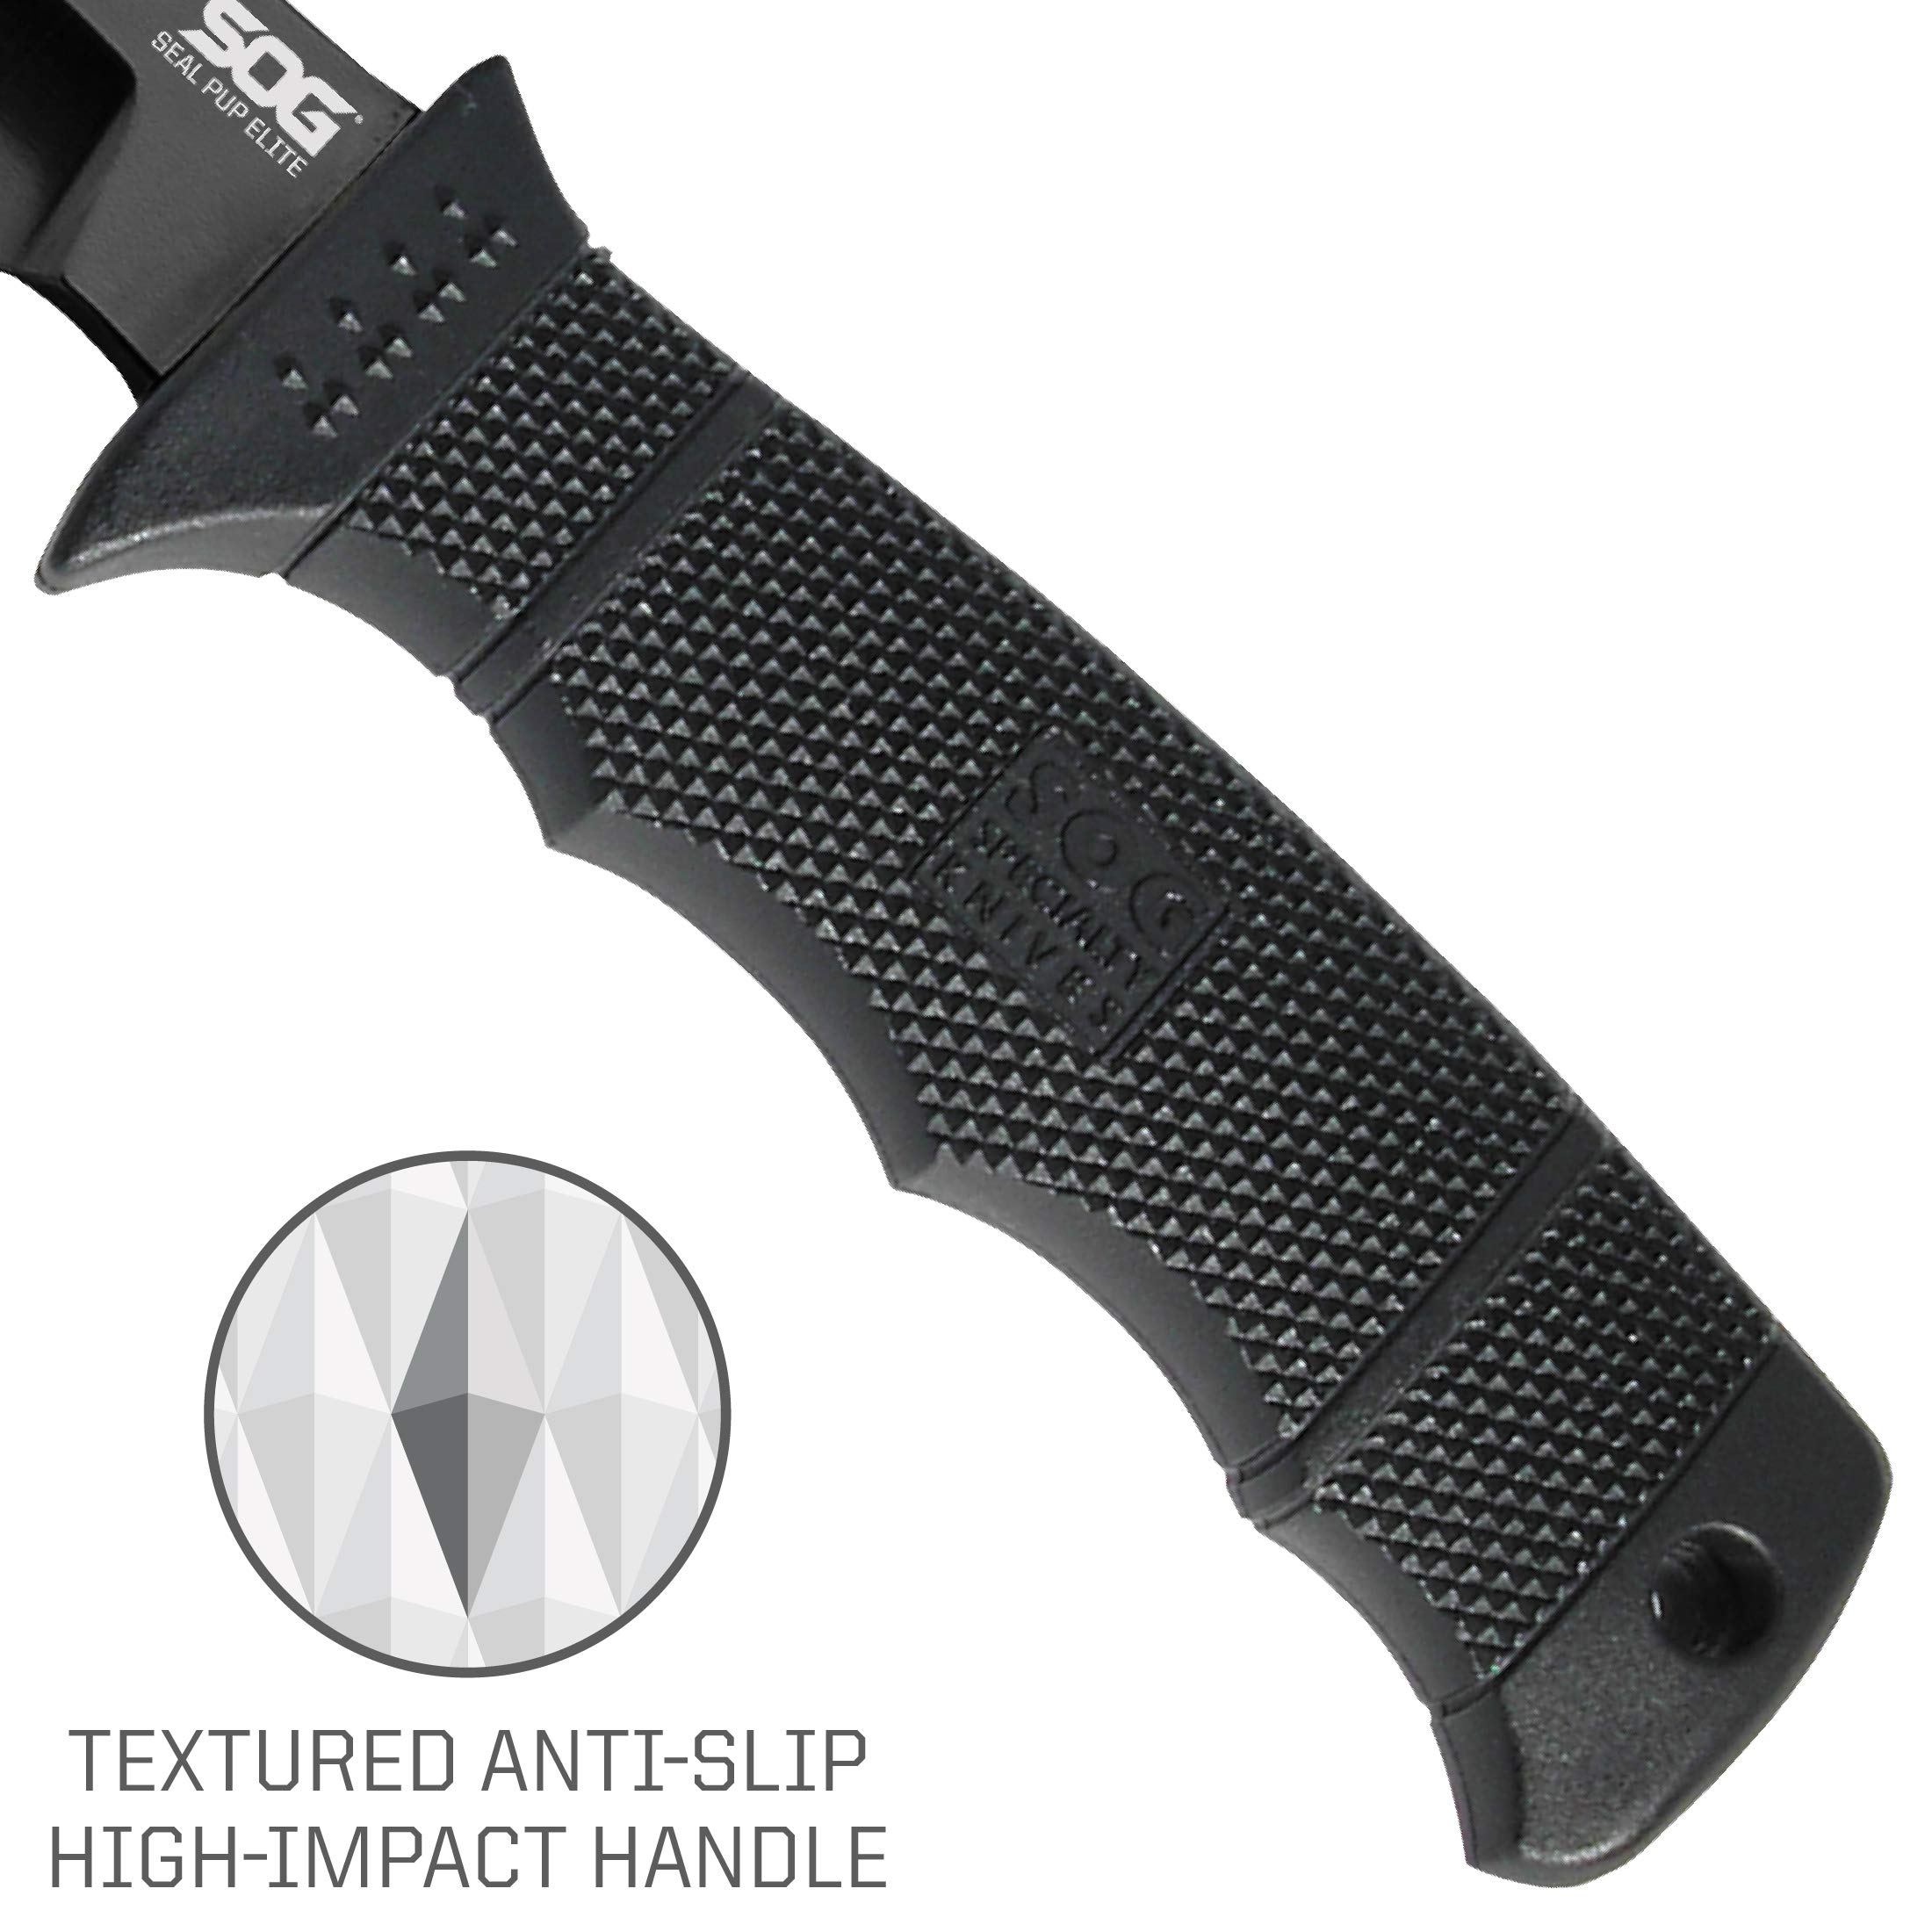 SOG Fixed Blade Knives with Sheath - SEAL Pup Elite Survival Knife, Hunting Knife w/ 4.85 Inch AUS-8 Bowie Knife Blade for a Tactical Knife (E37SN-CP) by SOG (Image #4)